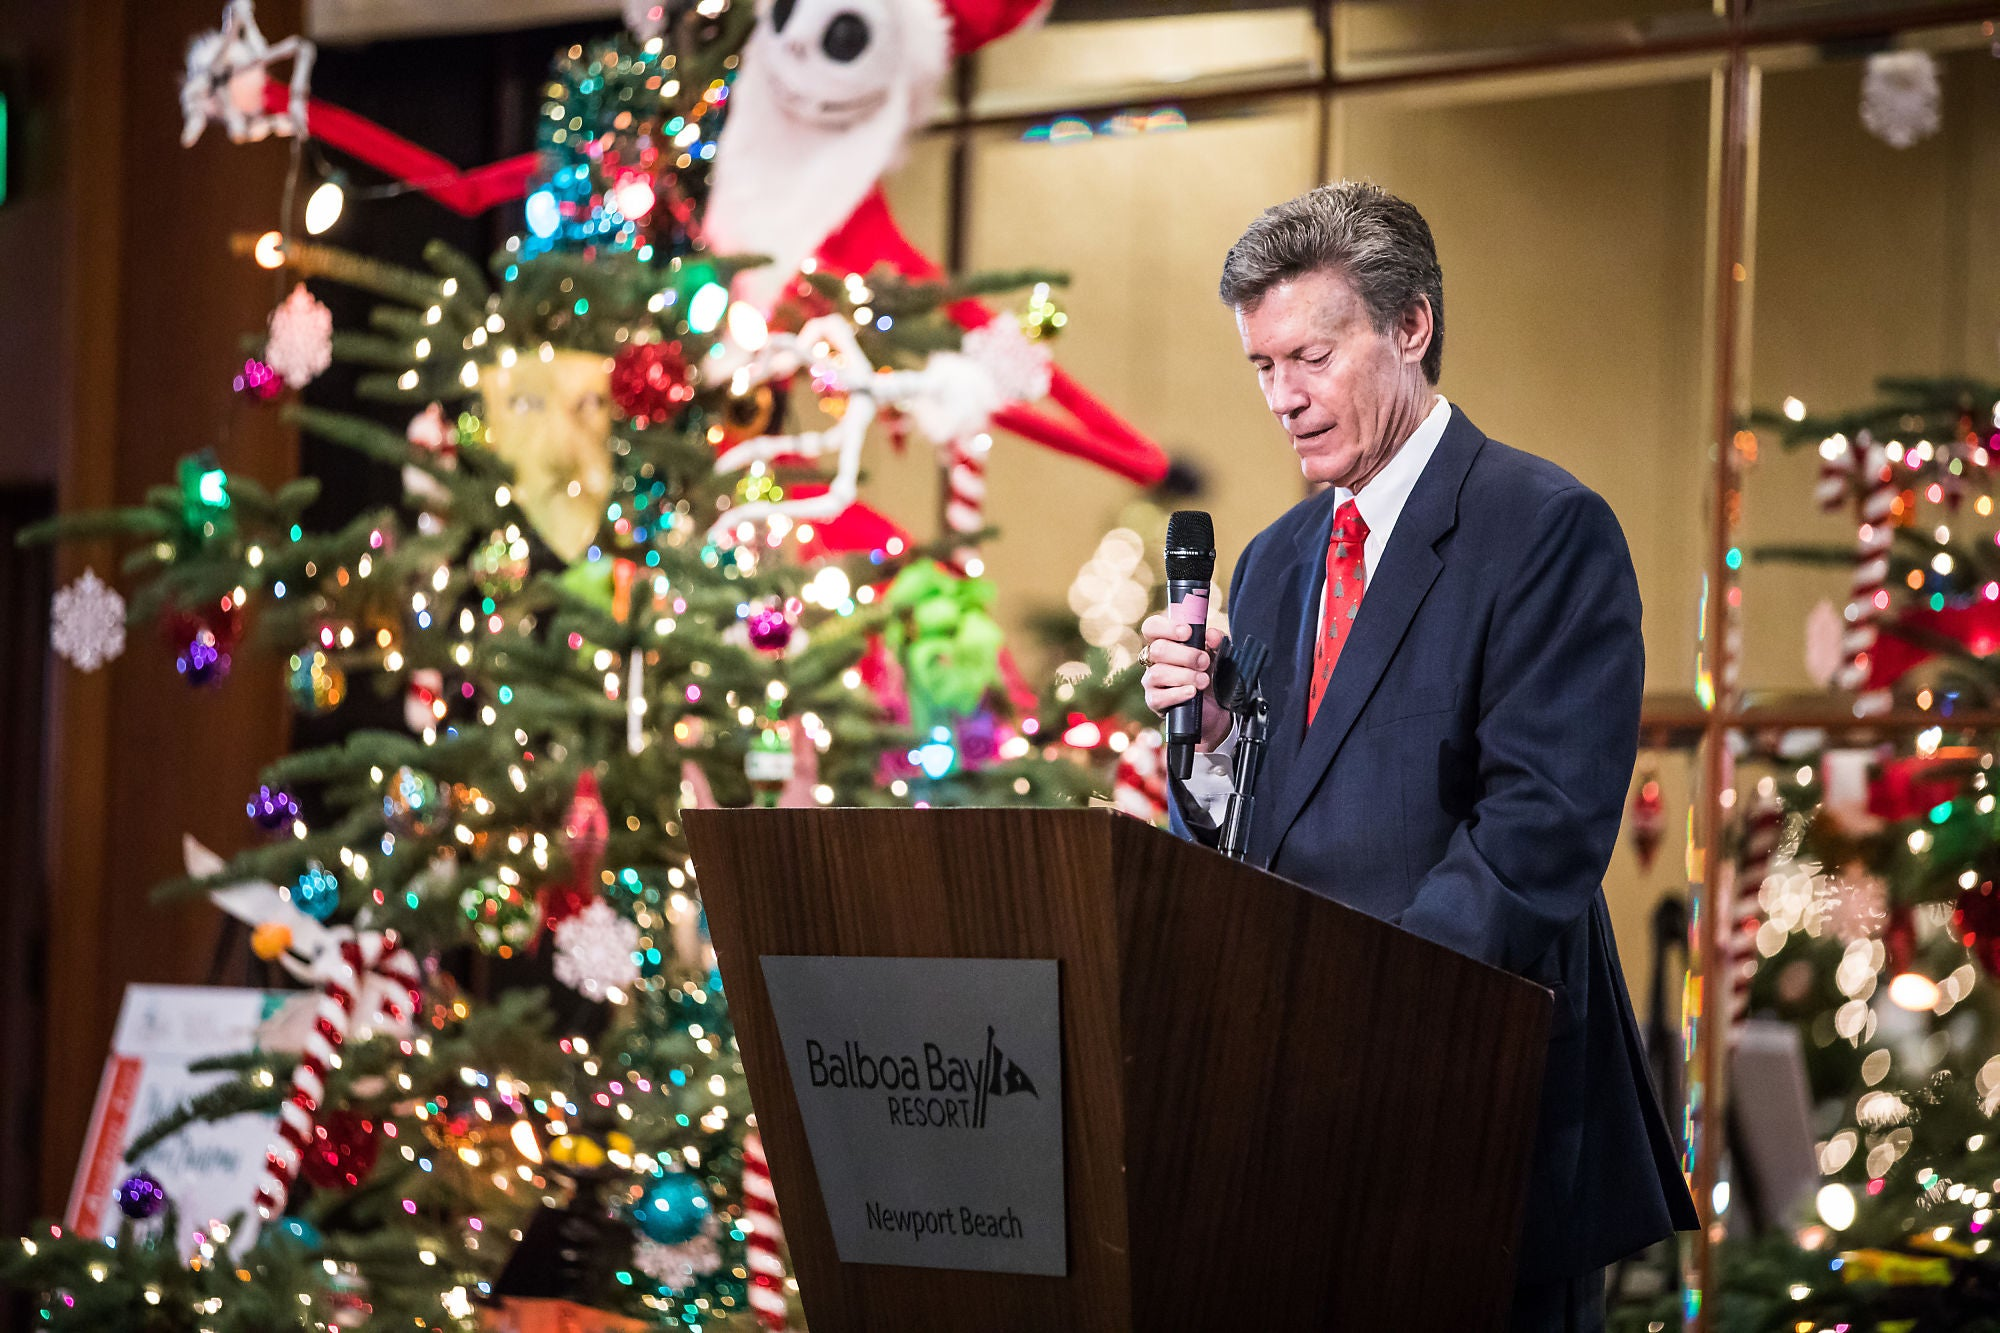 Person giving speech behind a podium, surrounded by Christmas decorations